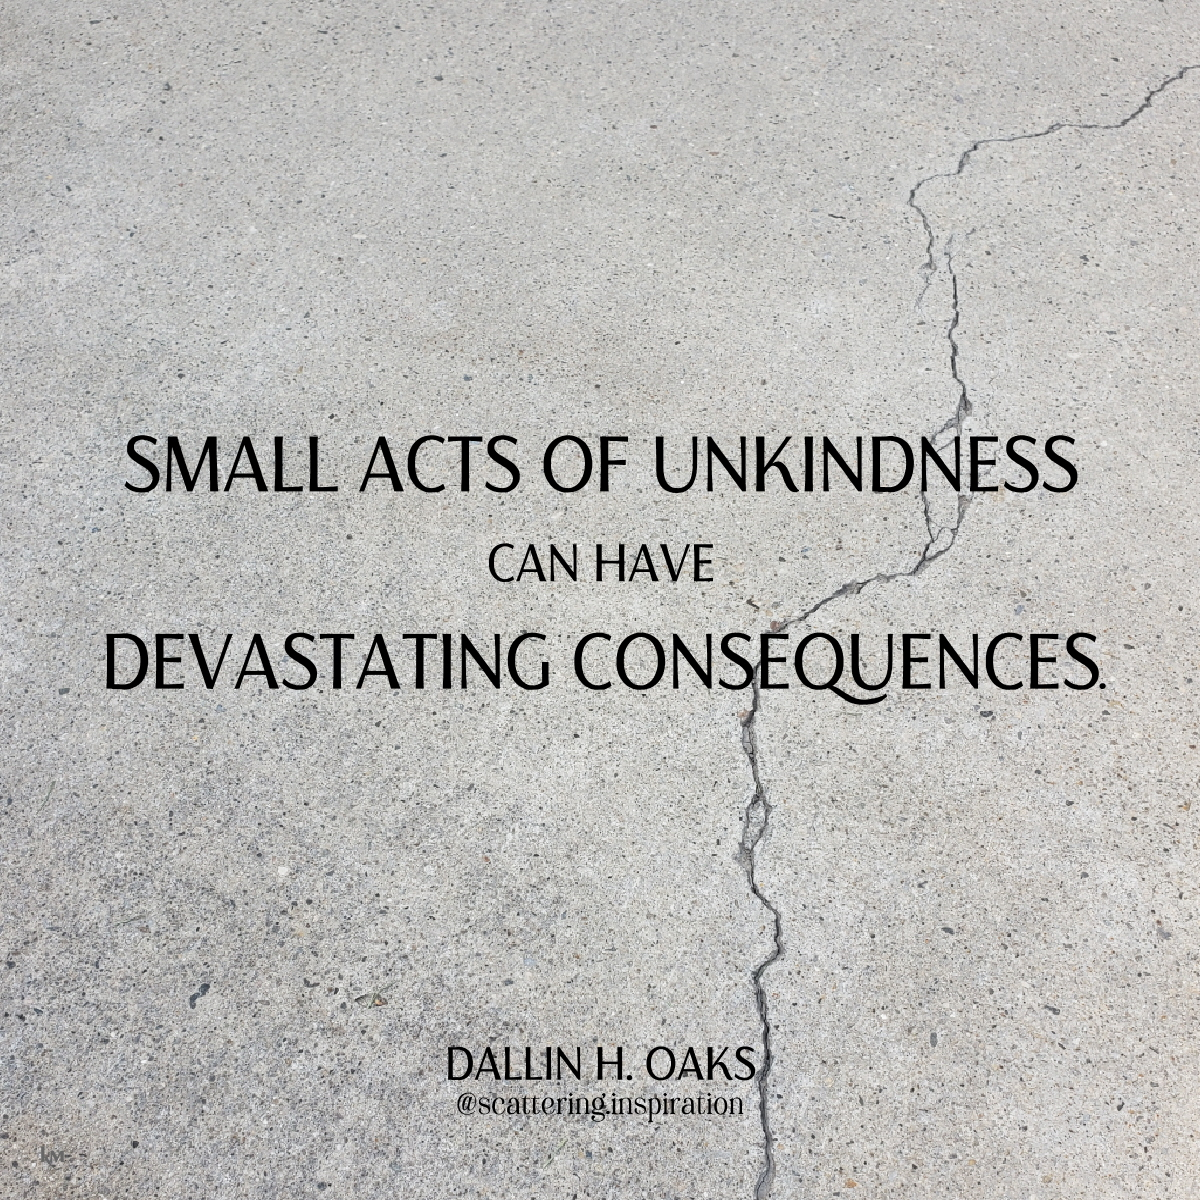 small acts of unkindness